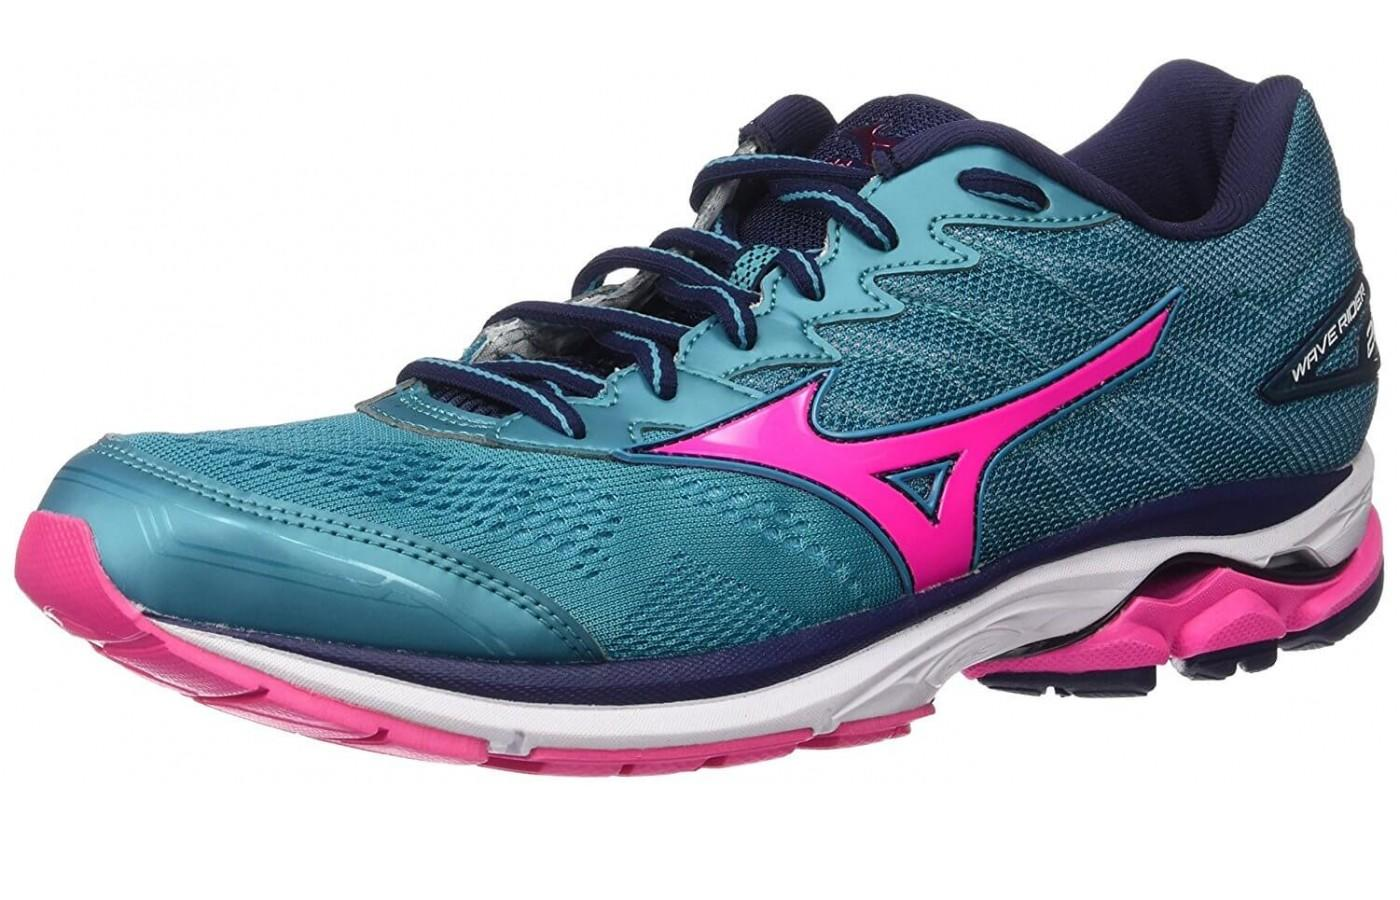 A full view of the Mizuno Wave Rider 20